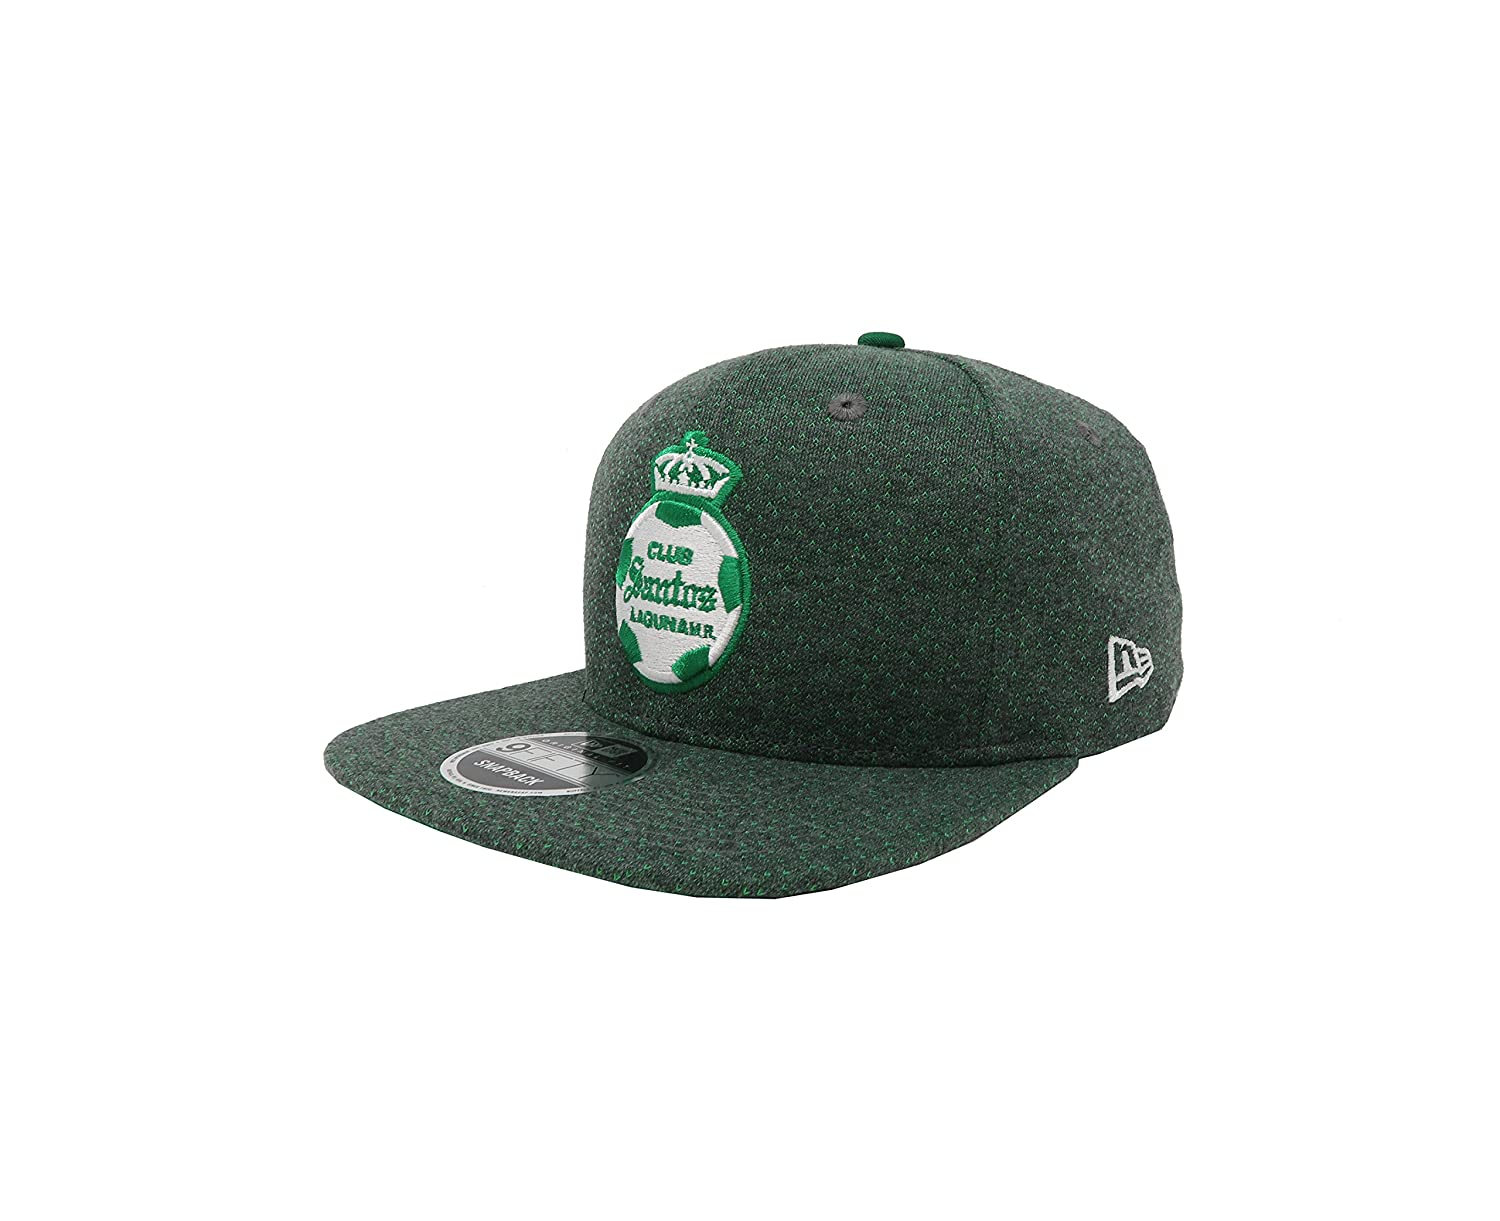 899640509a0b4 New Era 9Fifty Hat Santos Laguna Soccer Club Liga Mx Official Gray Snapback  Cap at Amazon Men s Clothing store